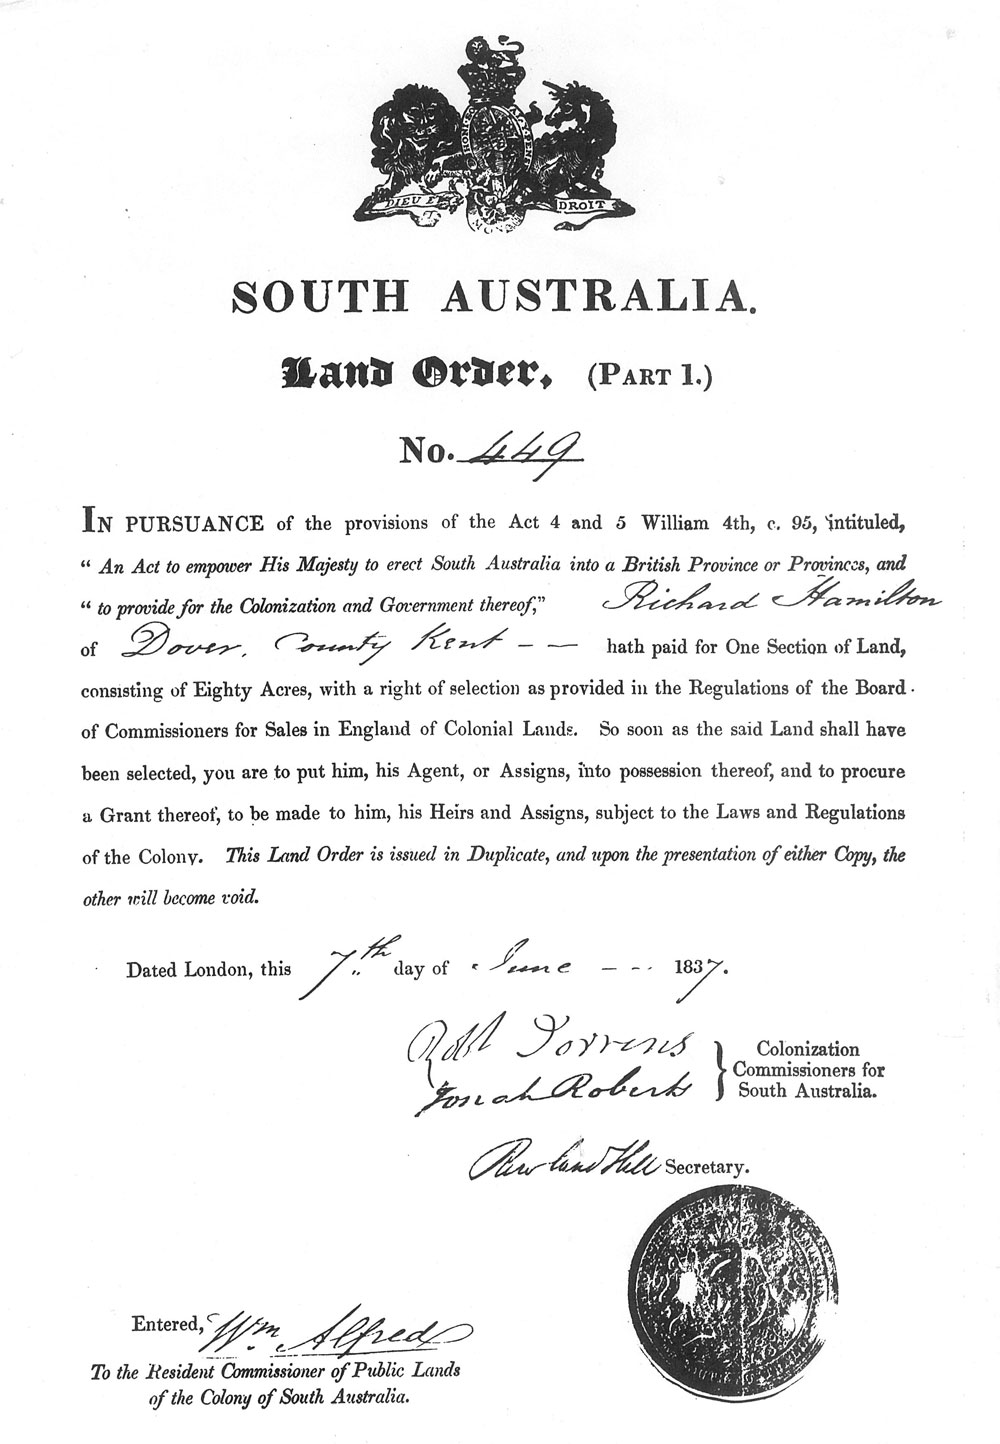 Richard-Hamilton-SA-Land-Order-1837